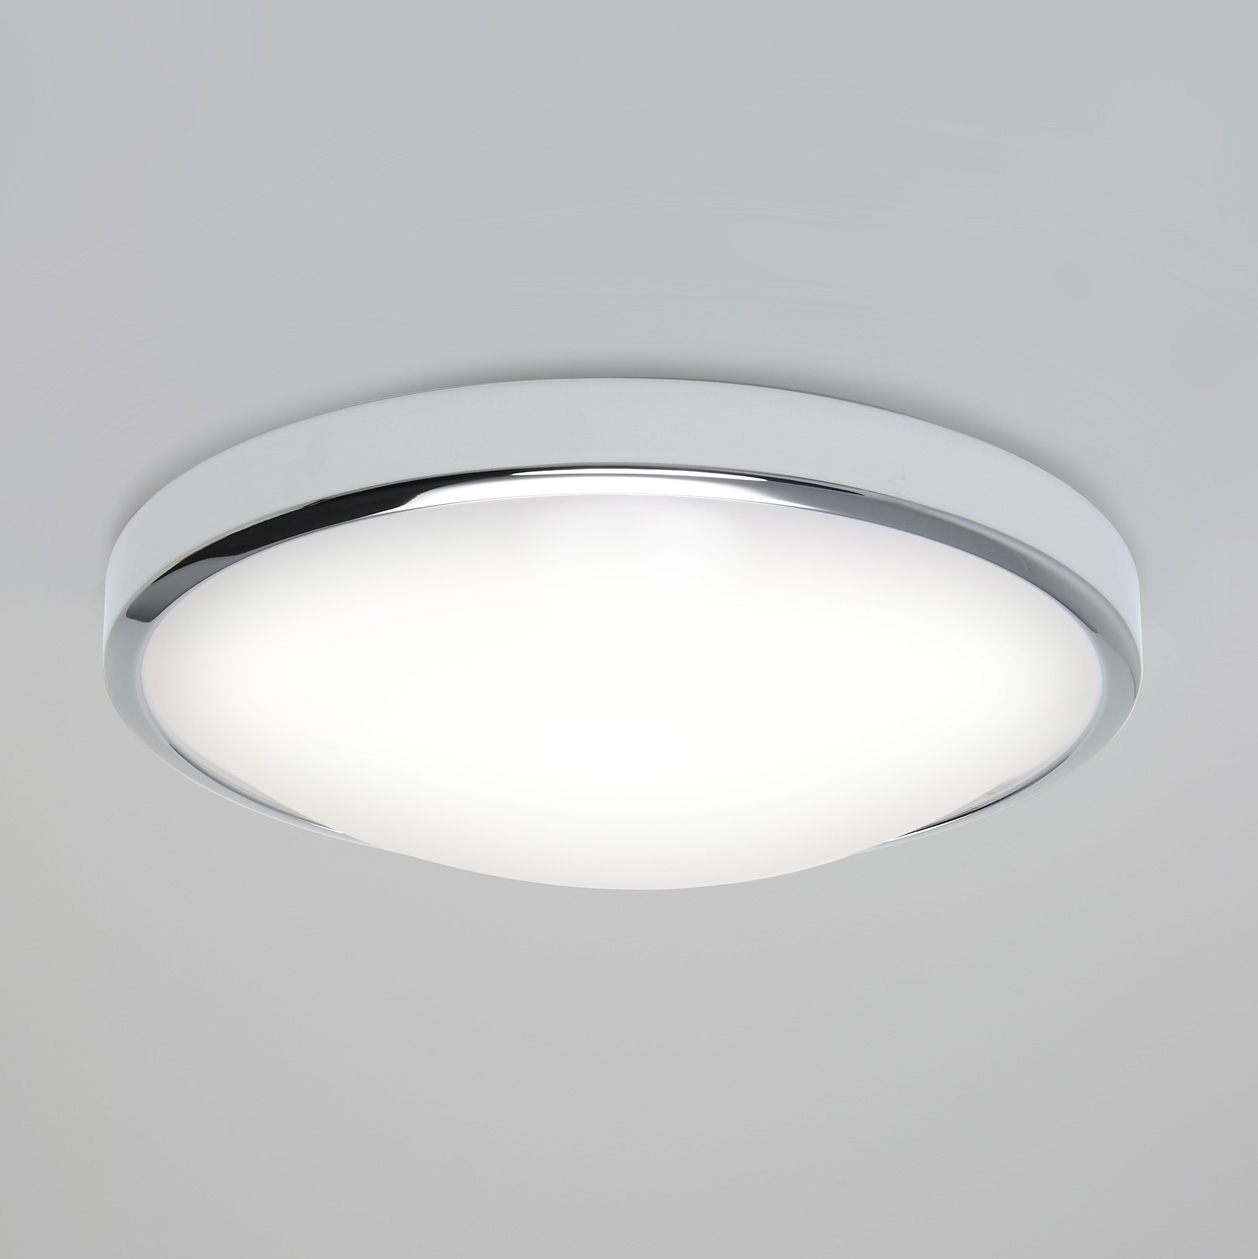 Astro Osaka LED round bathroom ceiling wall light chrome 16W warm white IP44 Thumbnail 1